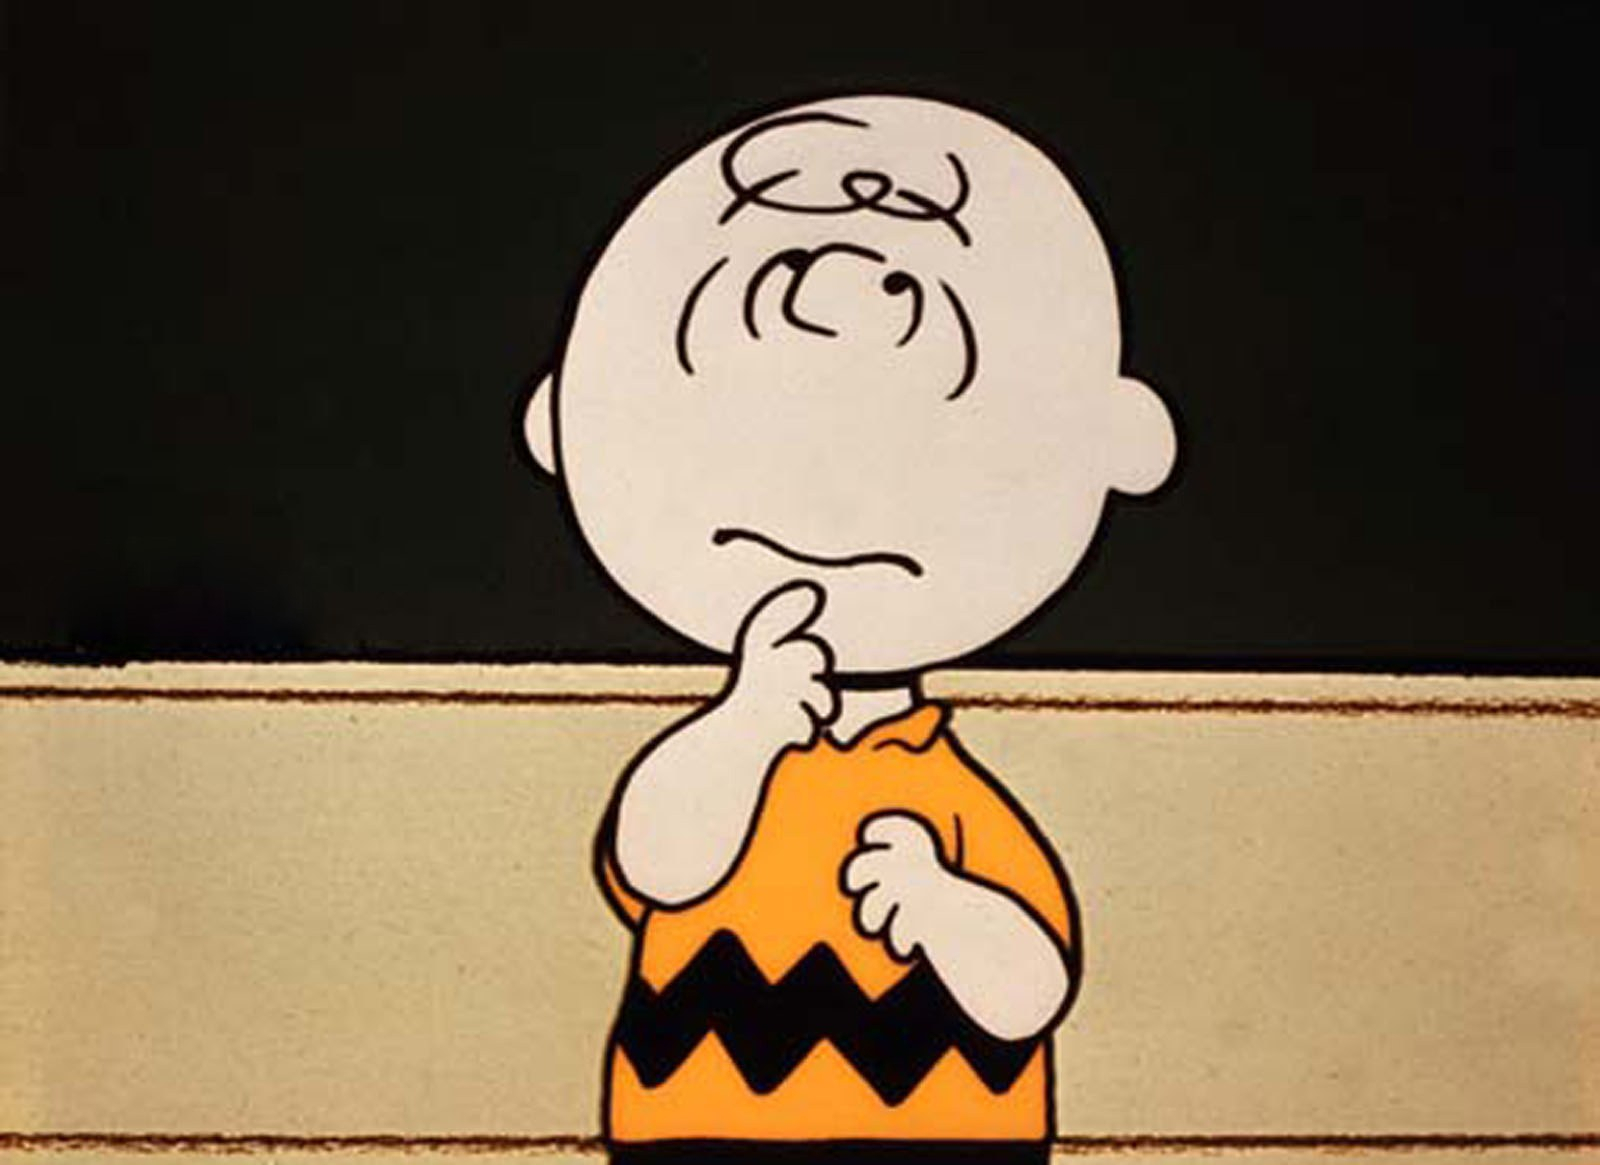 you're a winner, charlie brown, and it's bumming us out - gq